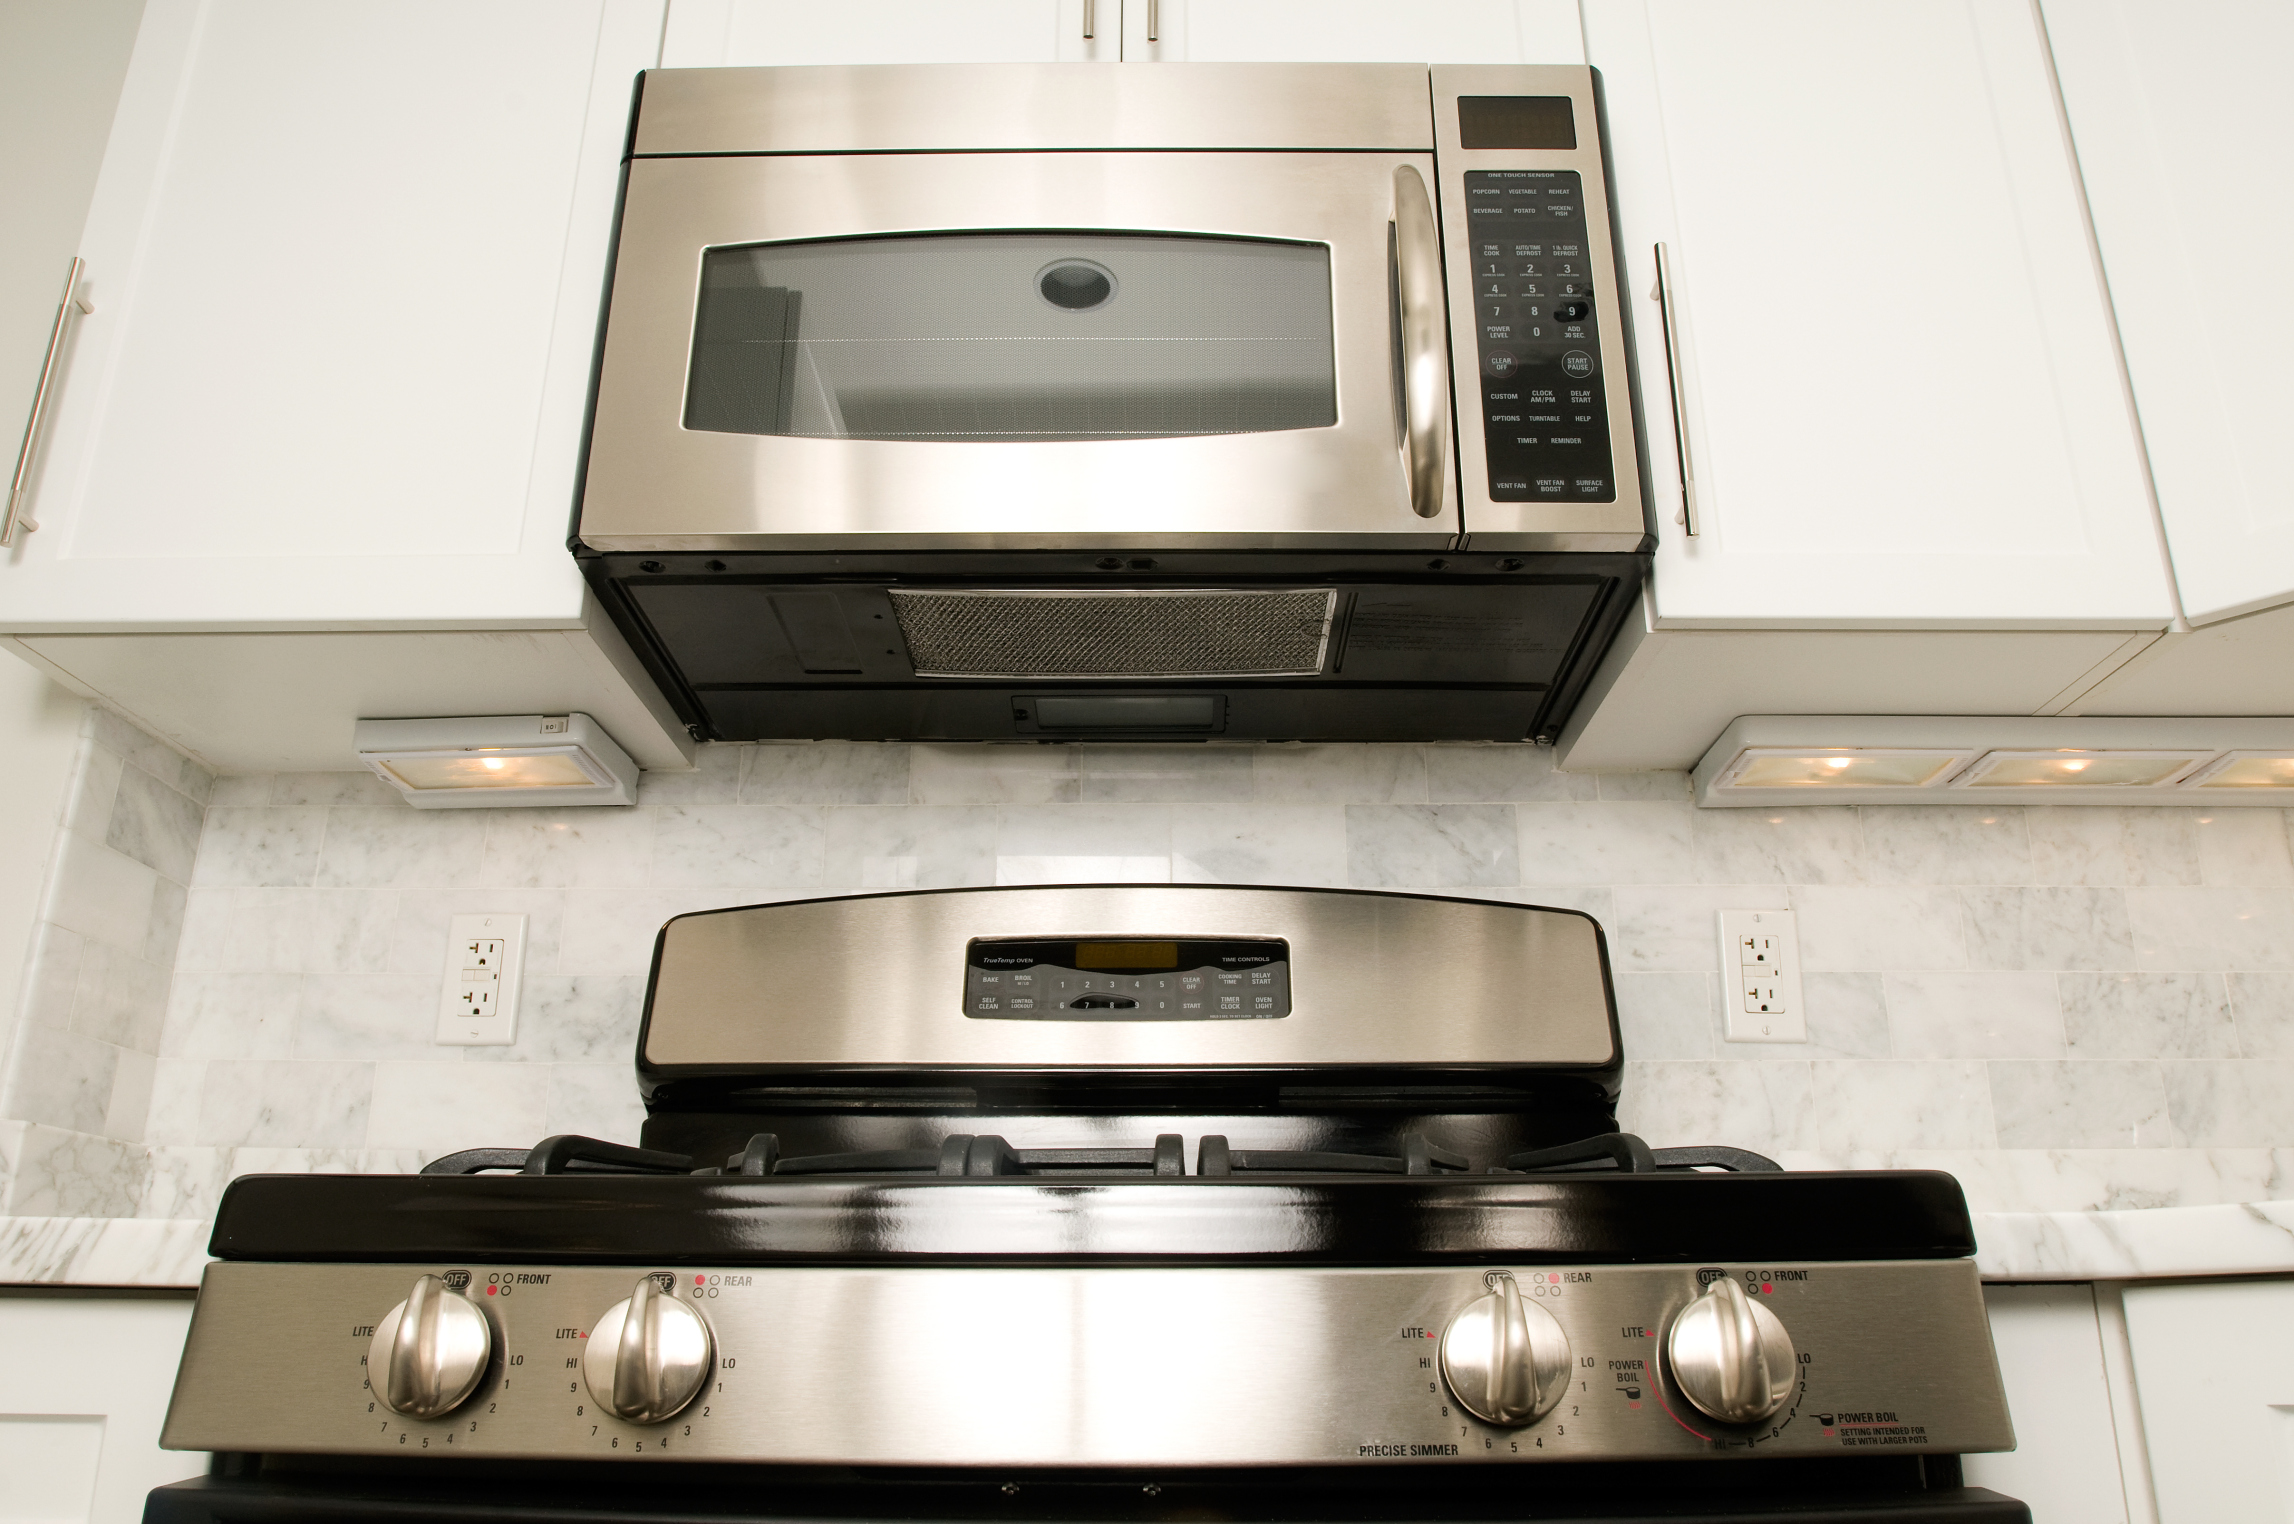 How to remove the upper vent on a built in microwave ehow uk for Stove top with built in vent